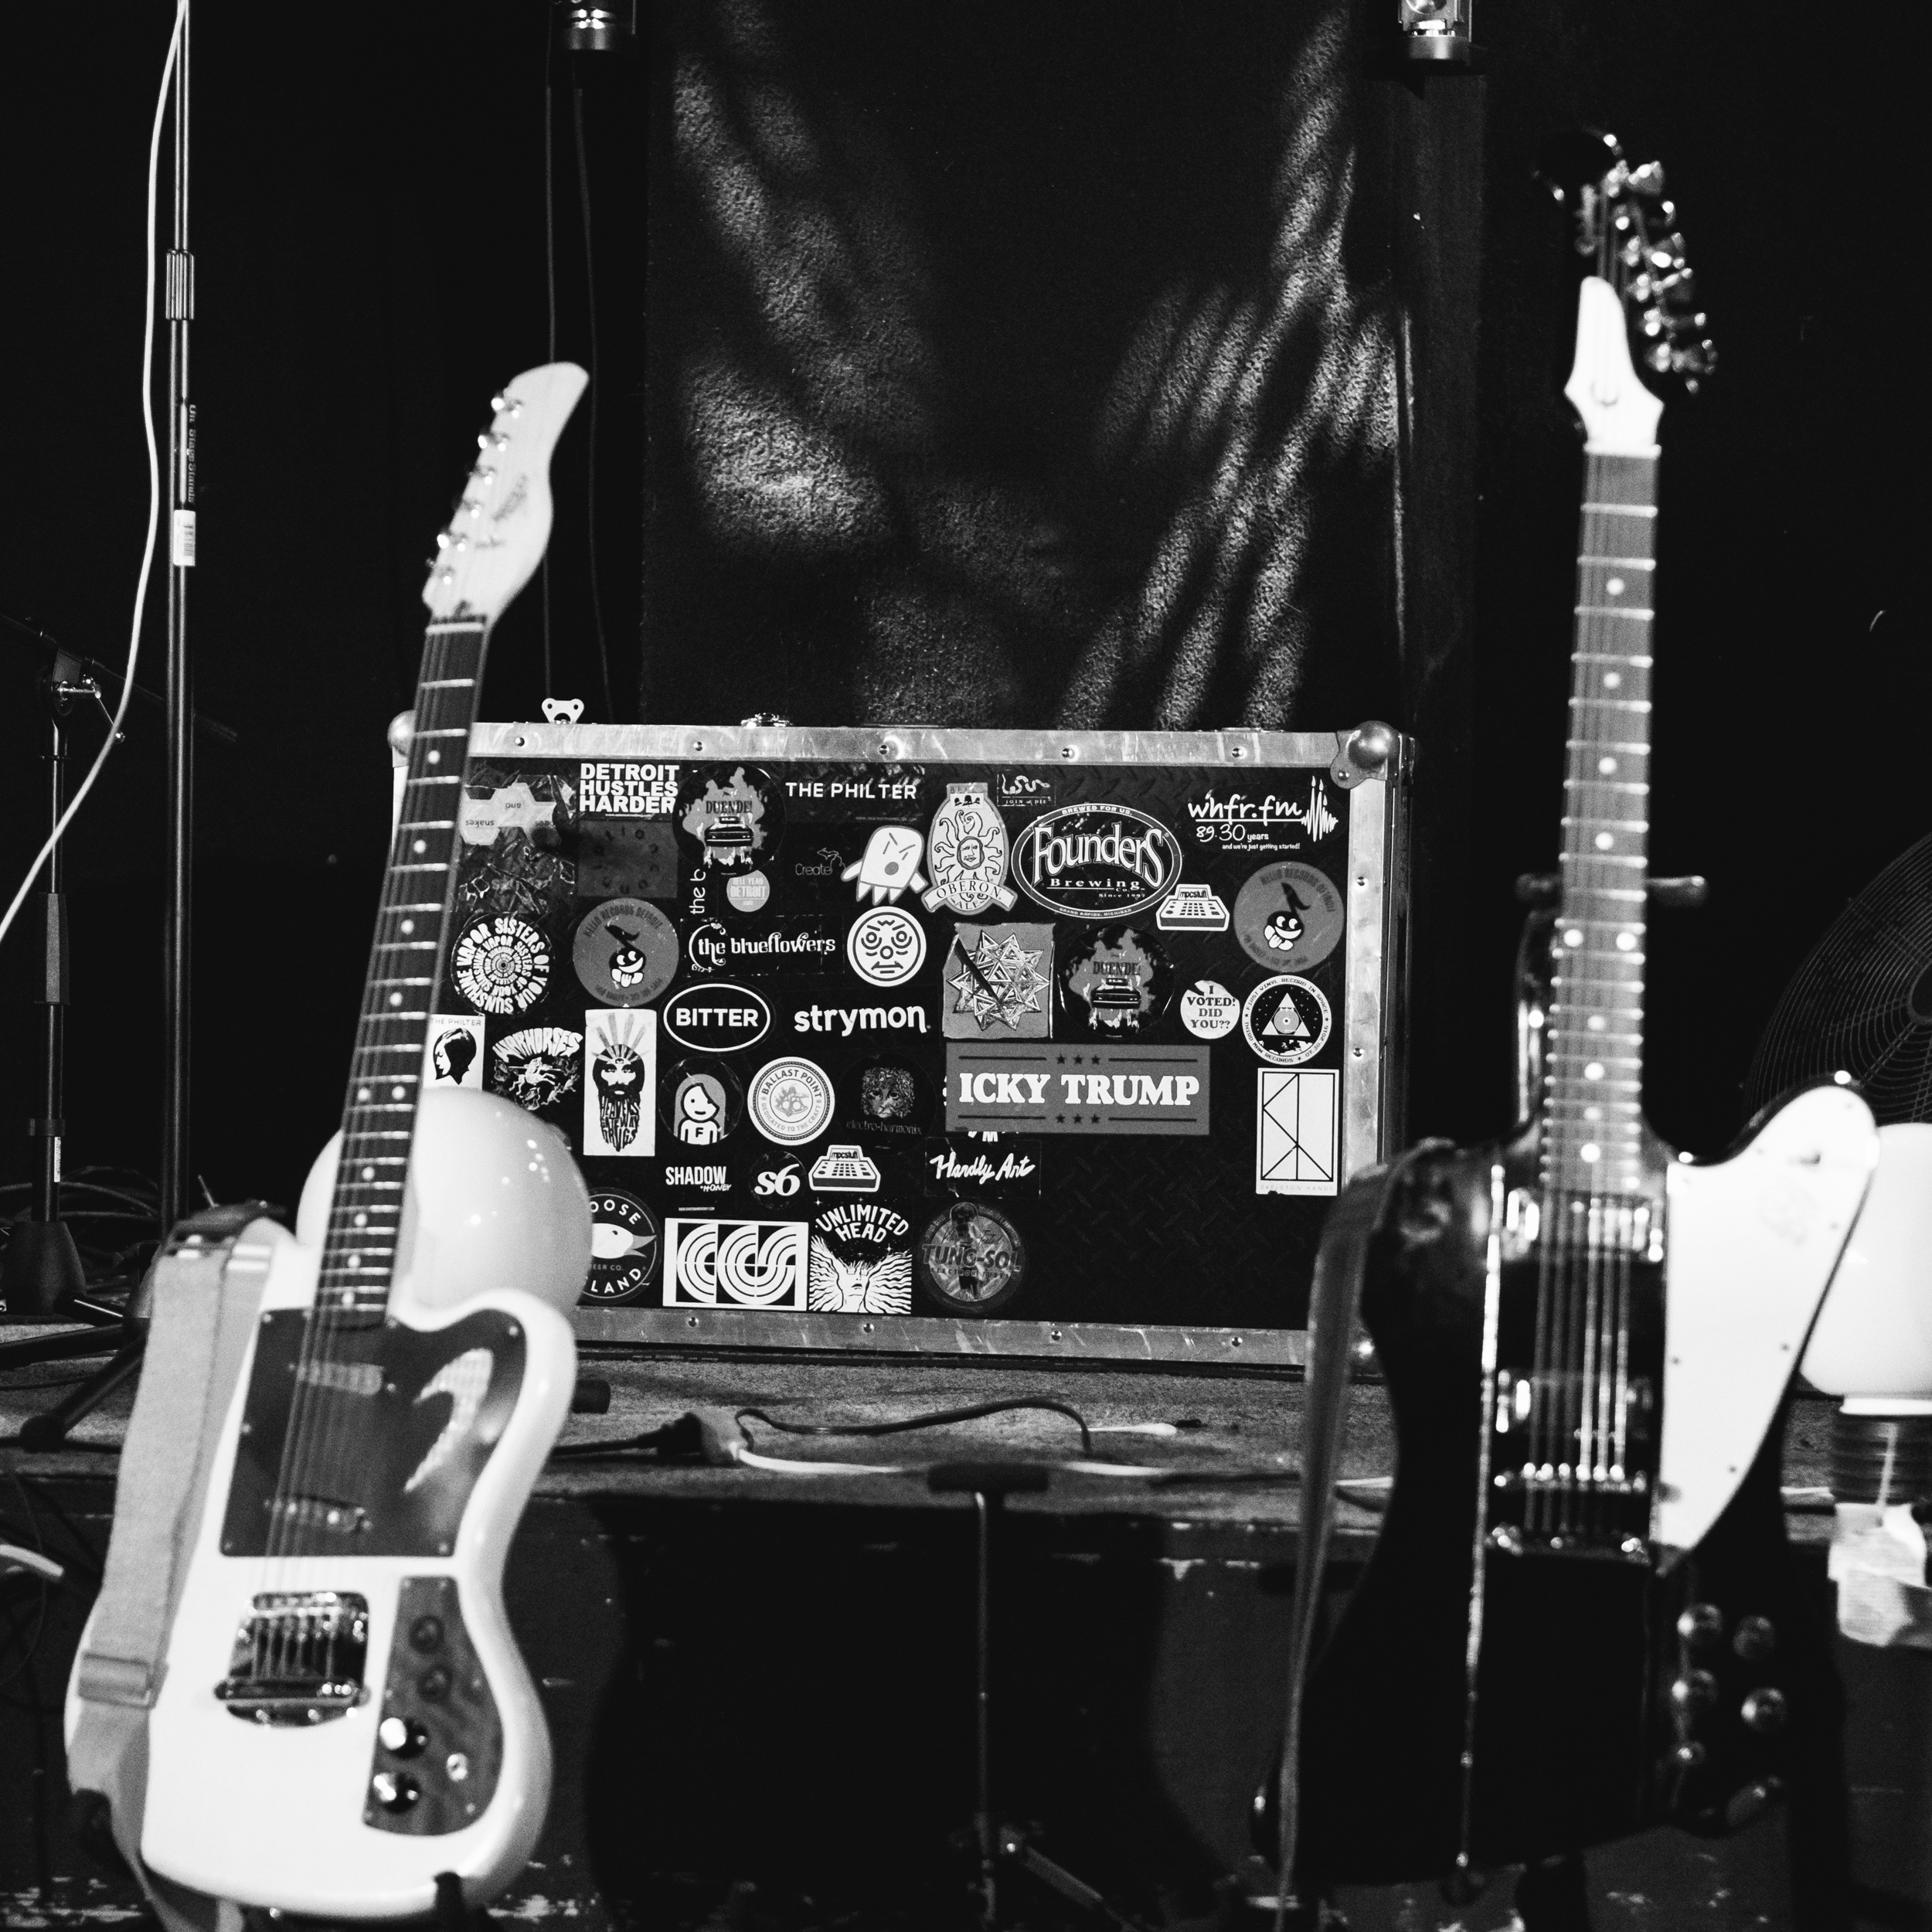 17-06-10_Concert_at_the_Foundry_6100267.JPG